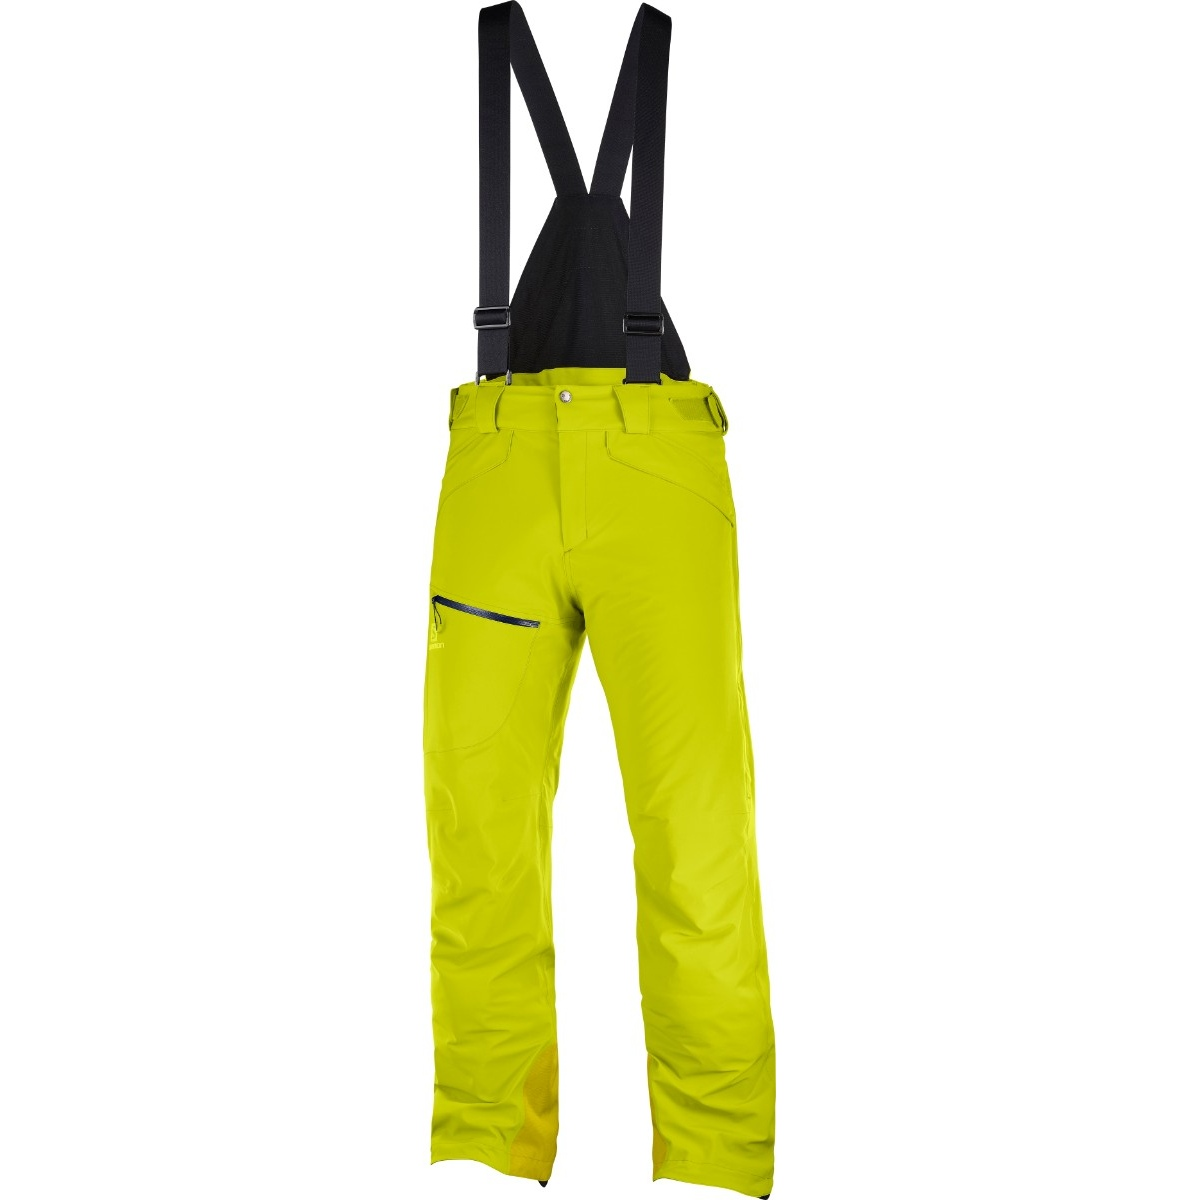 Salomon Pantaloni de ski Salomon CHILL OUT BIB - Galben